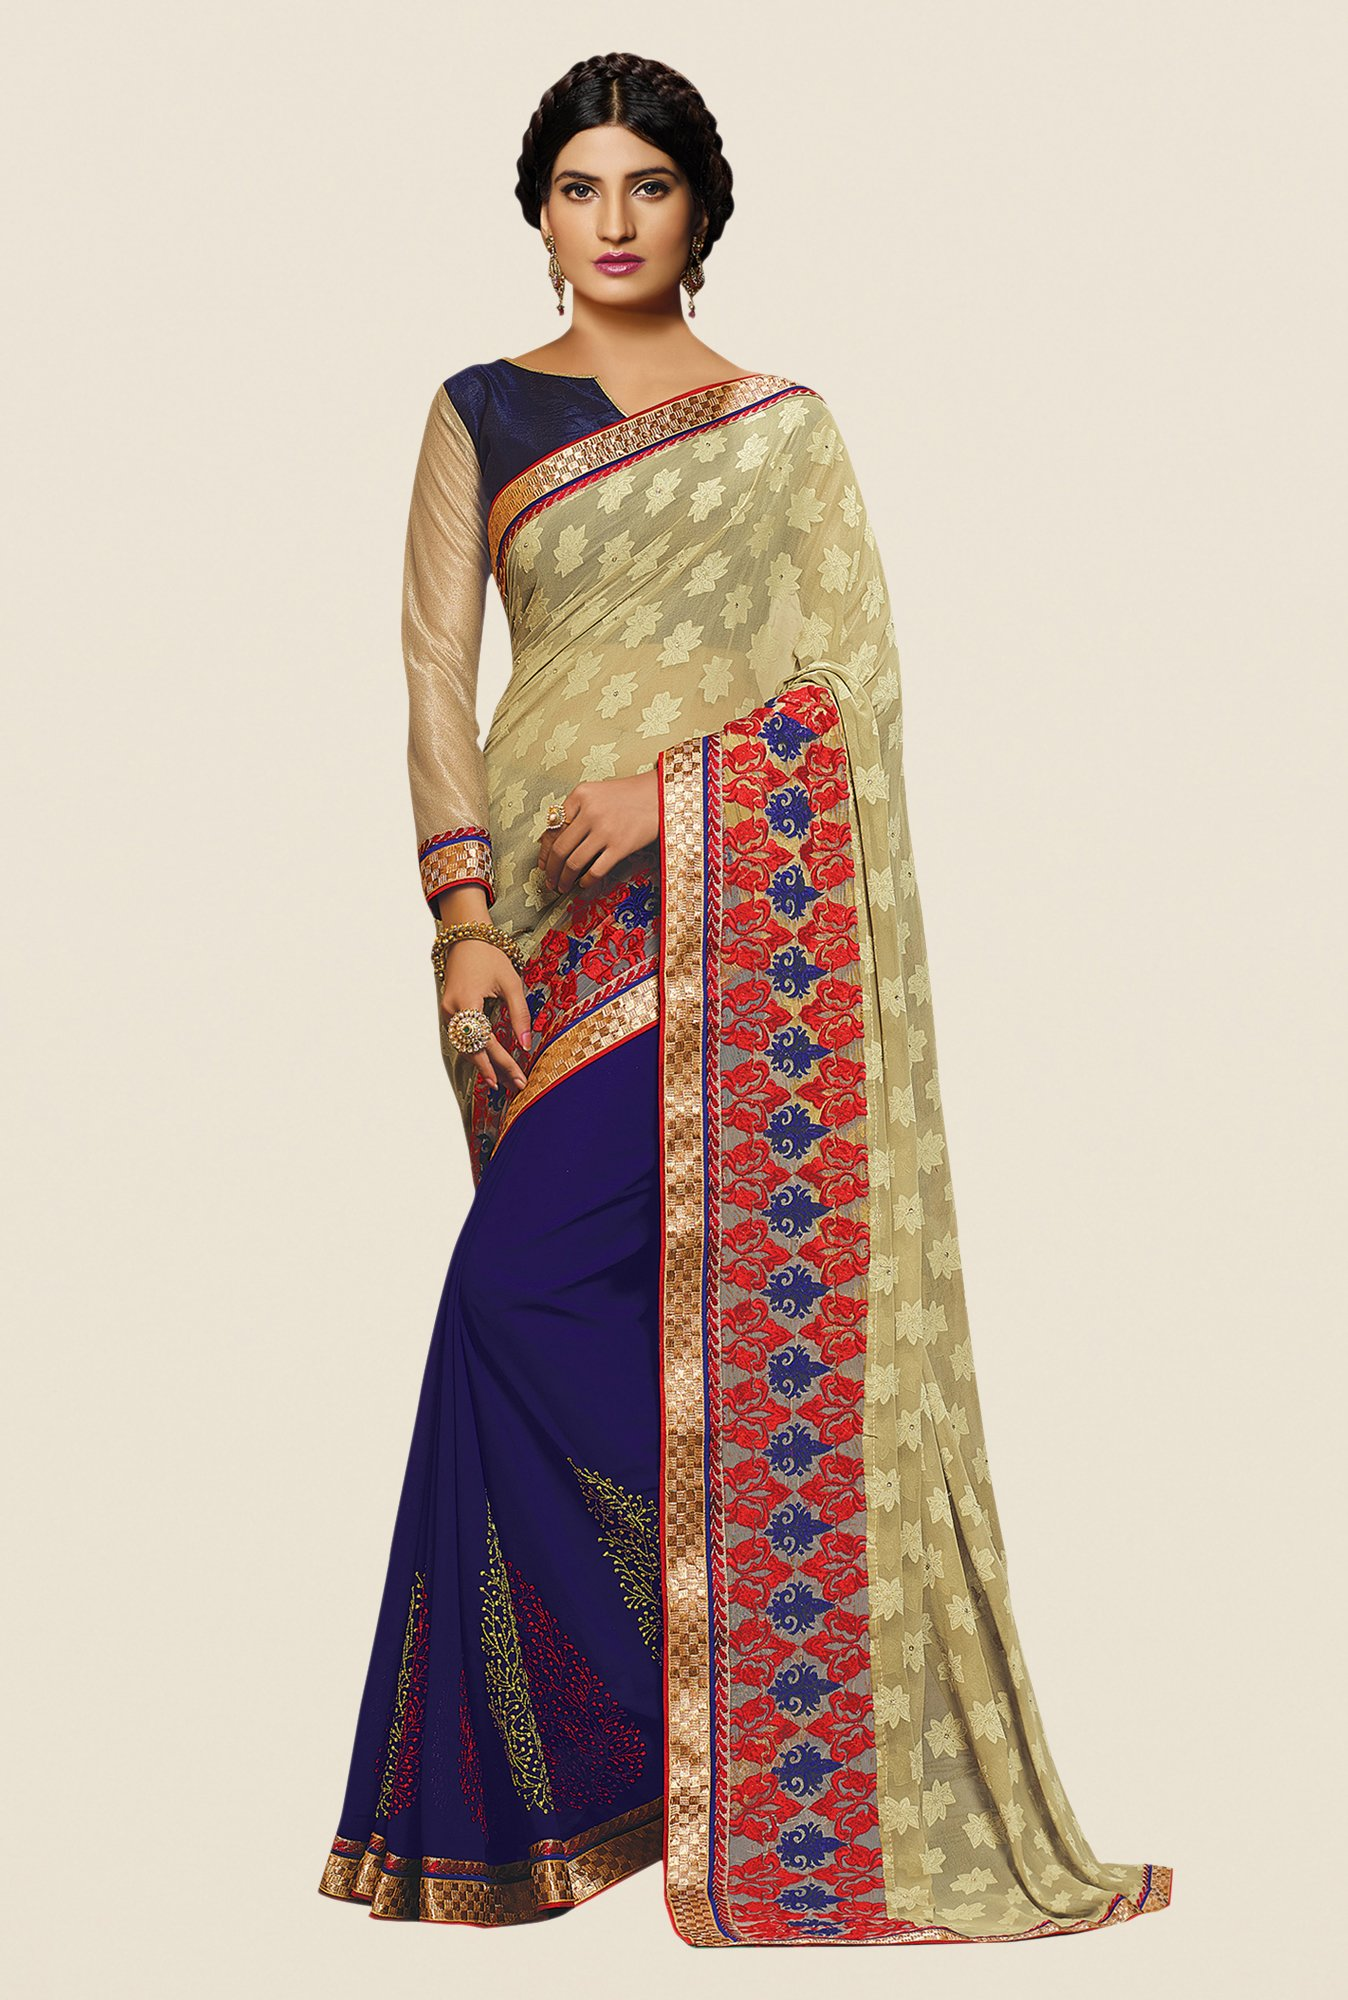 Shonaya Blue & Beige Georgette Embroidered Saree